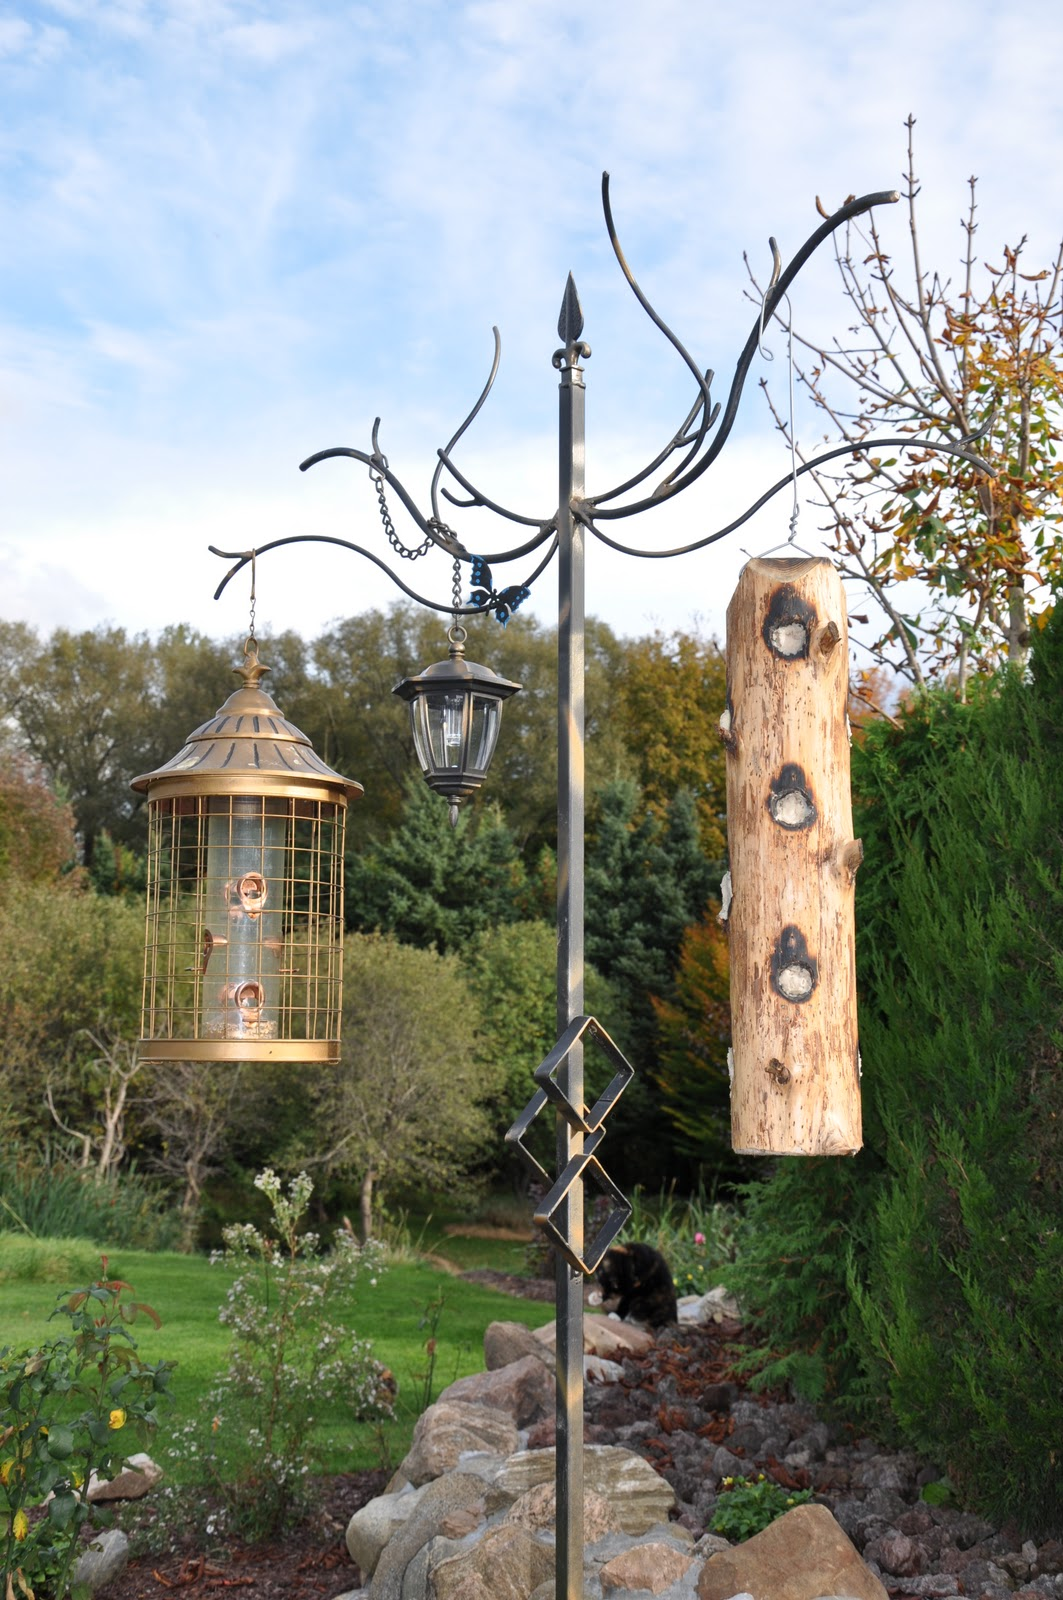 Michael W Designs The Majestic Tree Bird Feeder Stand